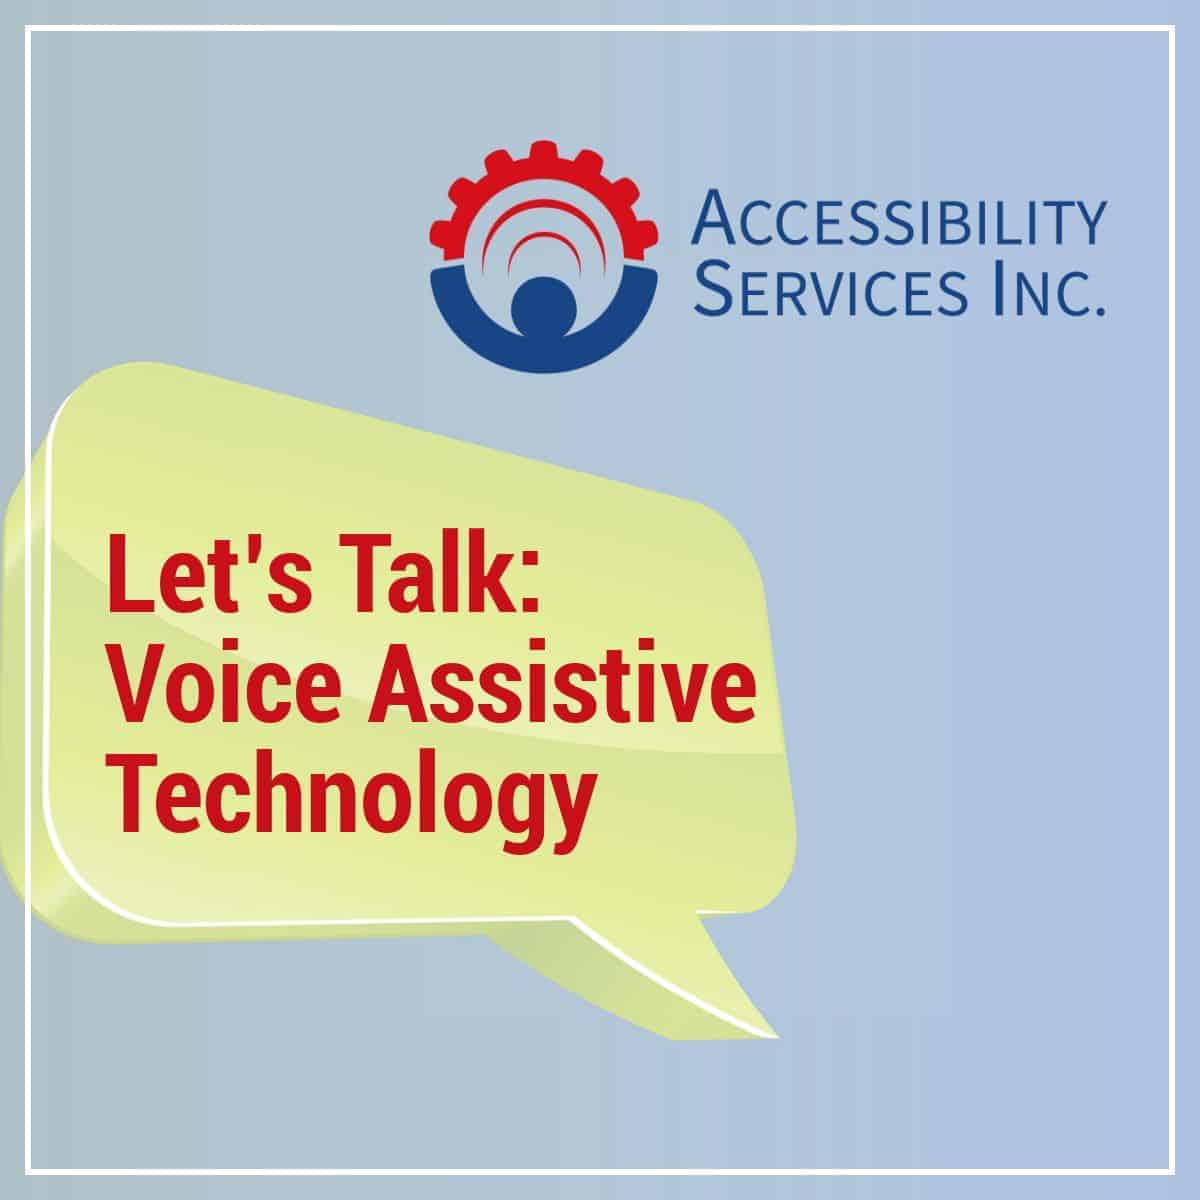 Let's Talk: Voice Assistive Technology